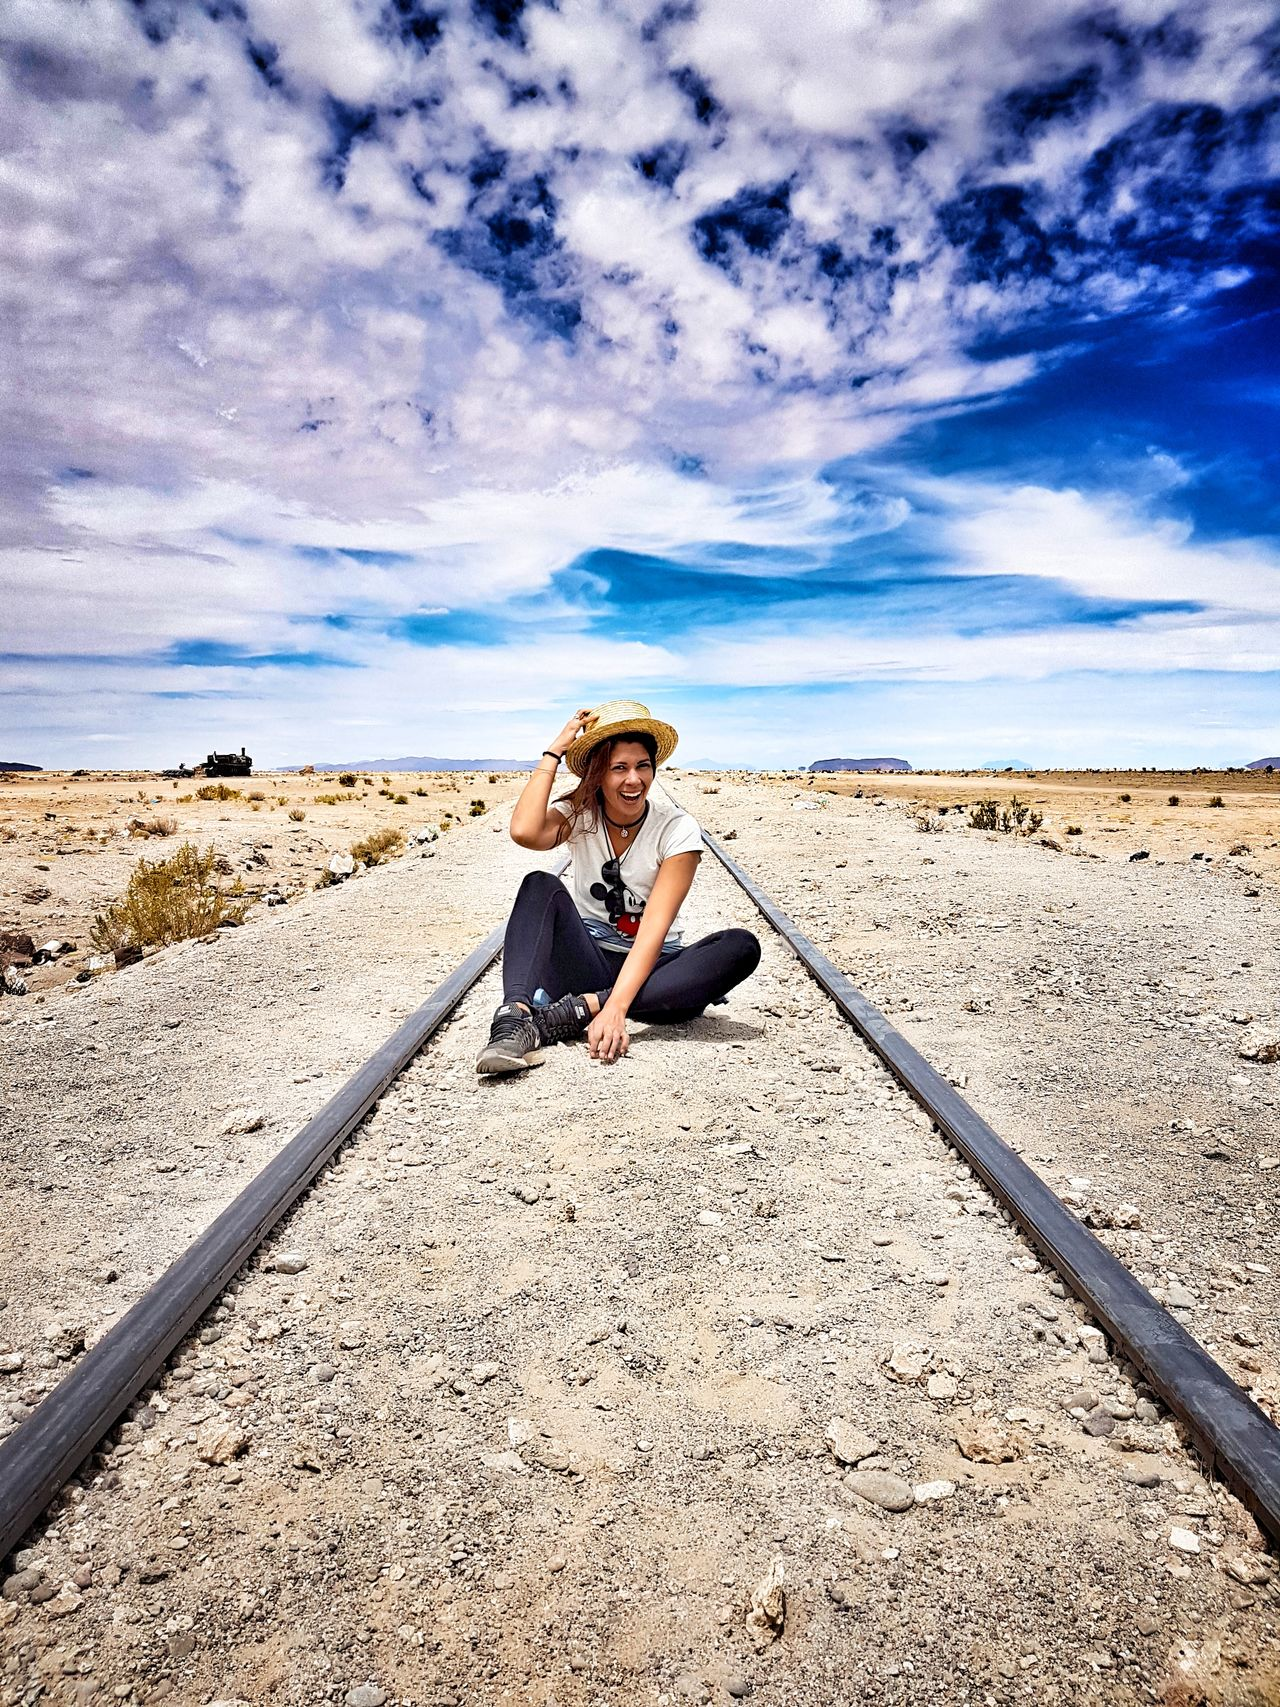 One Person Cloud - Sky Real People Leisure Activity Sky Outdoors Lifestyles Sand Nature Train Tracks Candyfloss Clouds Hat Happy Laughing Landscape Travel Desert Bolivia